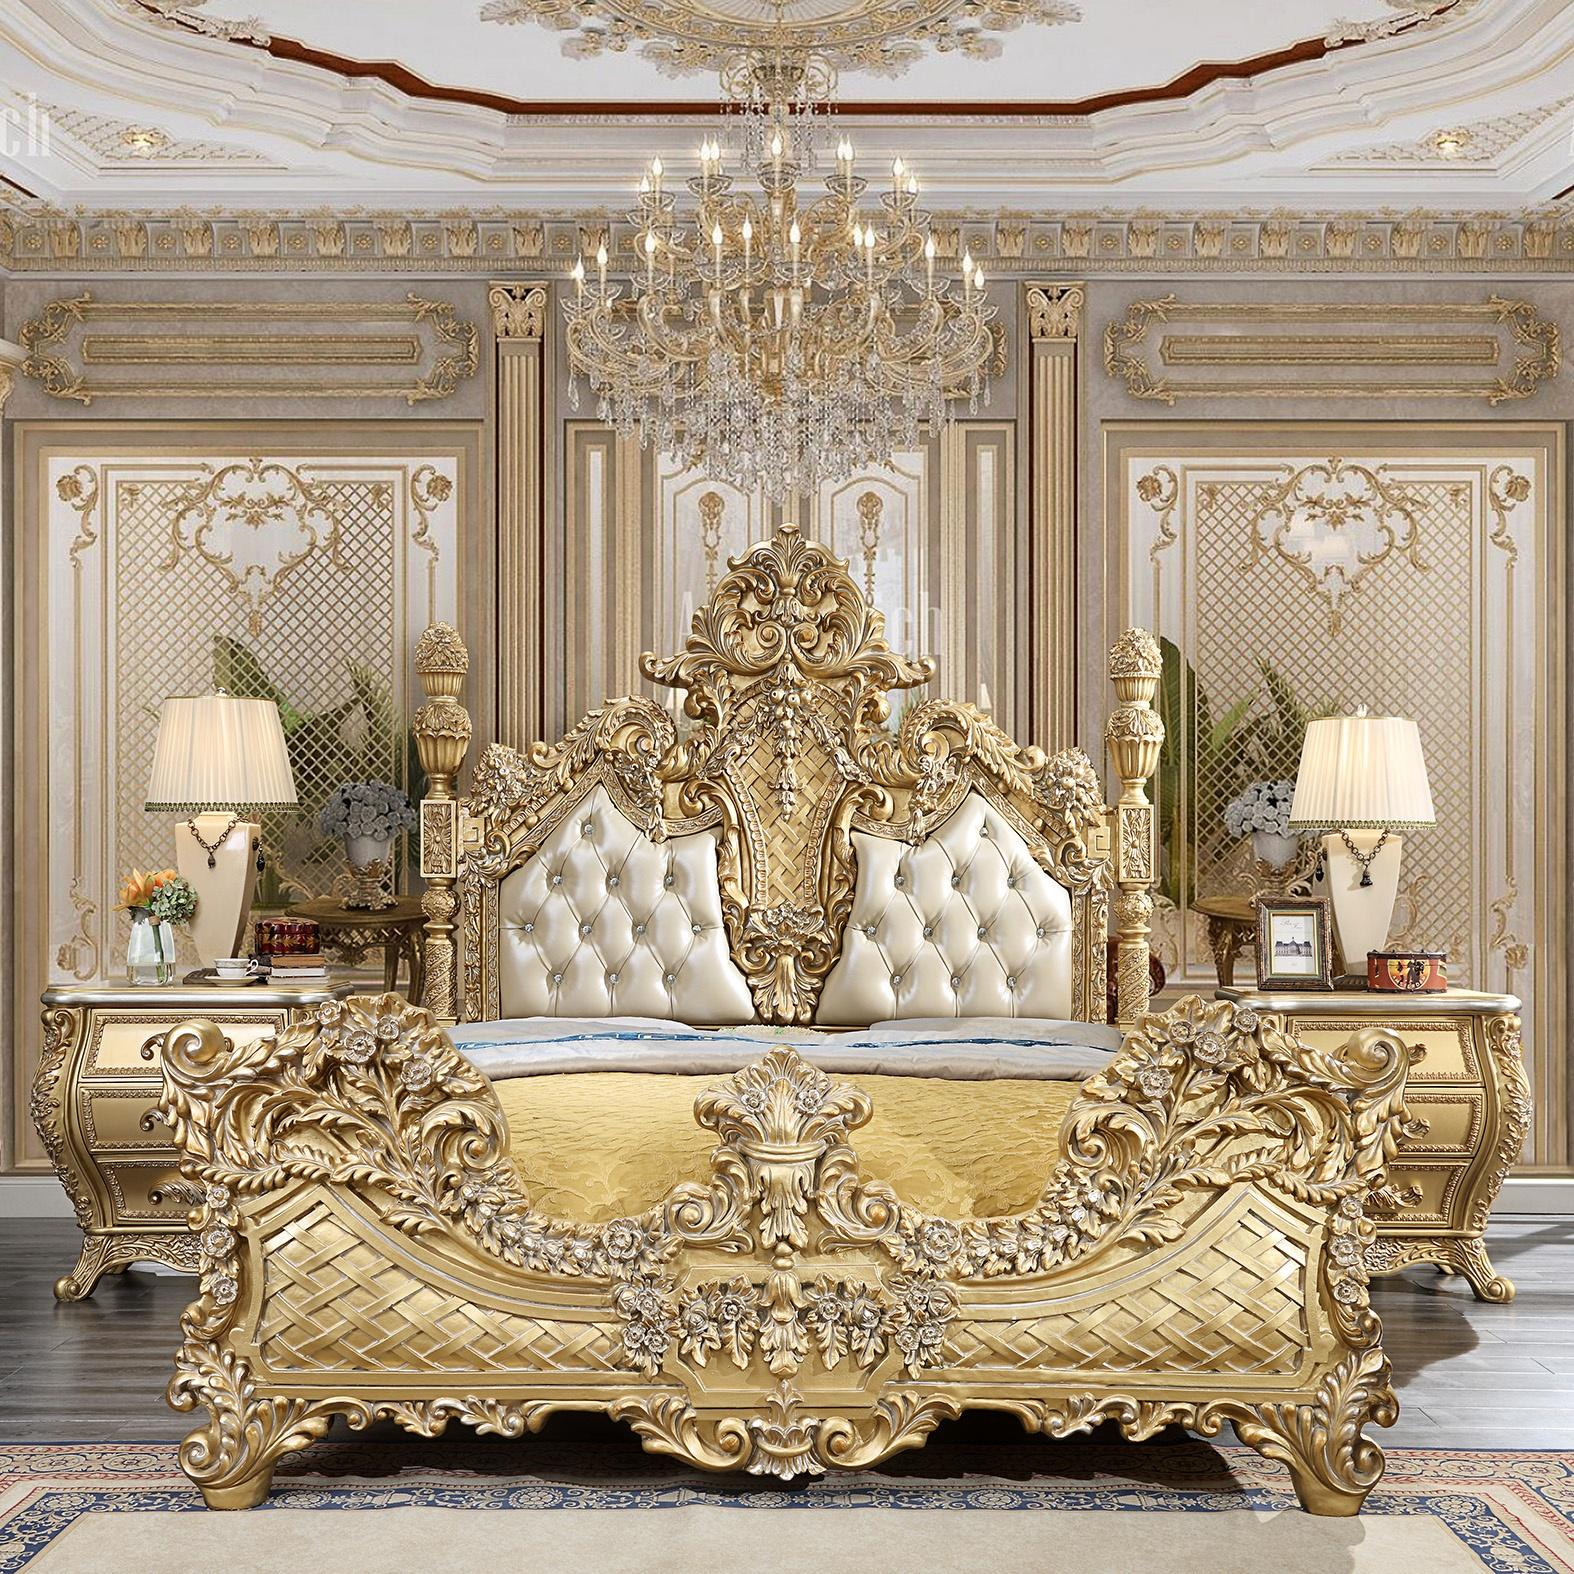 Metallic Antique Gold & Leather King Bed &2 Nightstands Traditional Homey Design HD-1801